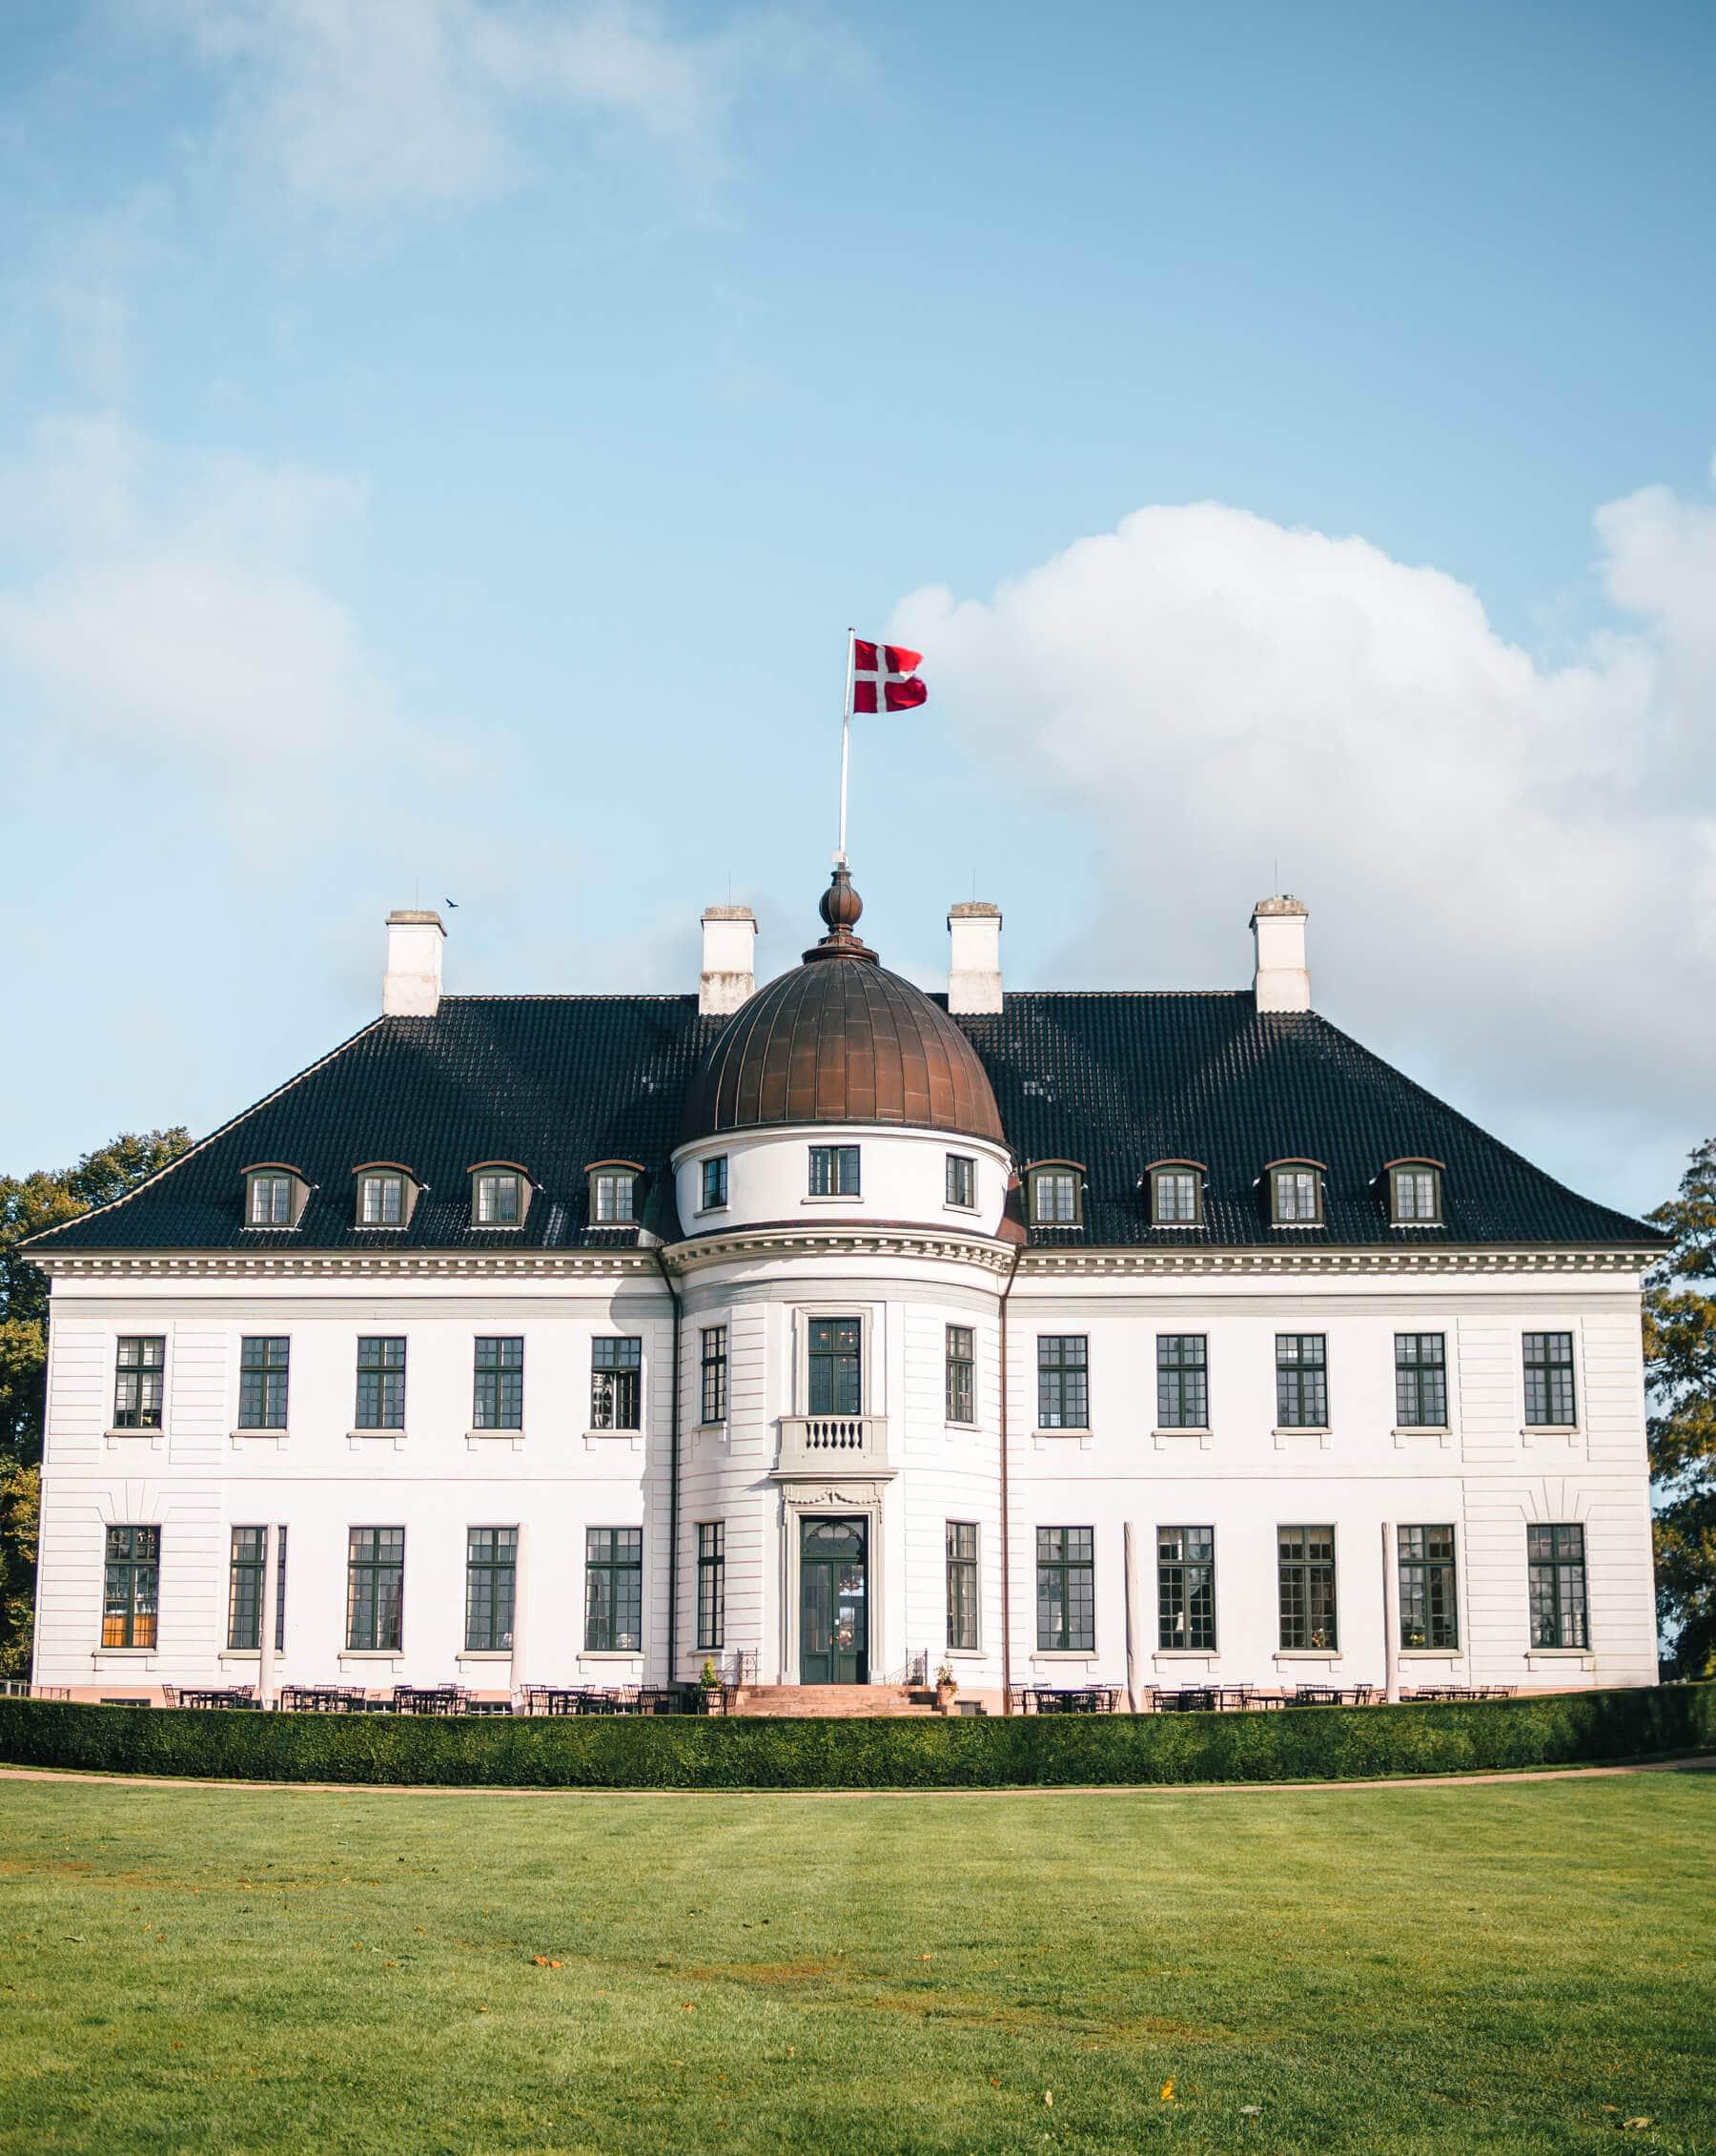 Bernstorff Castle Hotel outside Copenhagen - The perfect place to stay in Denmark